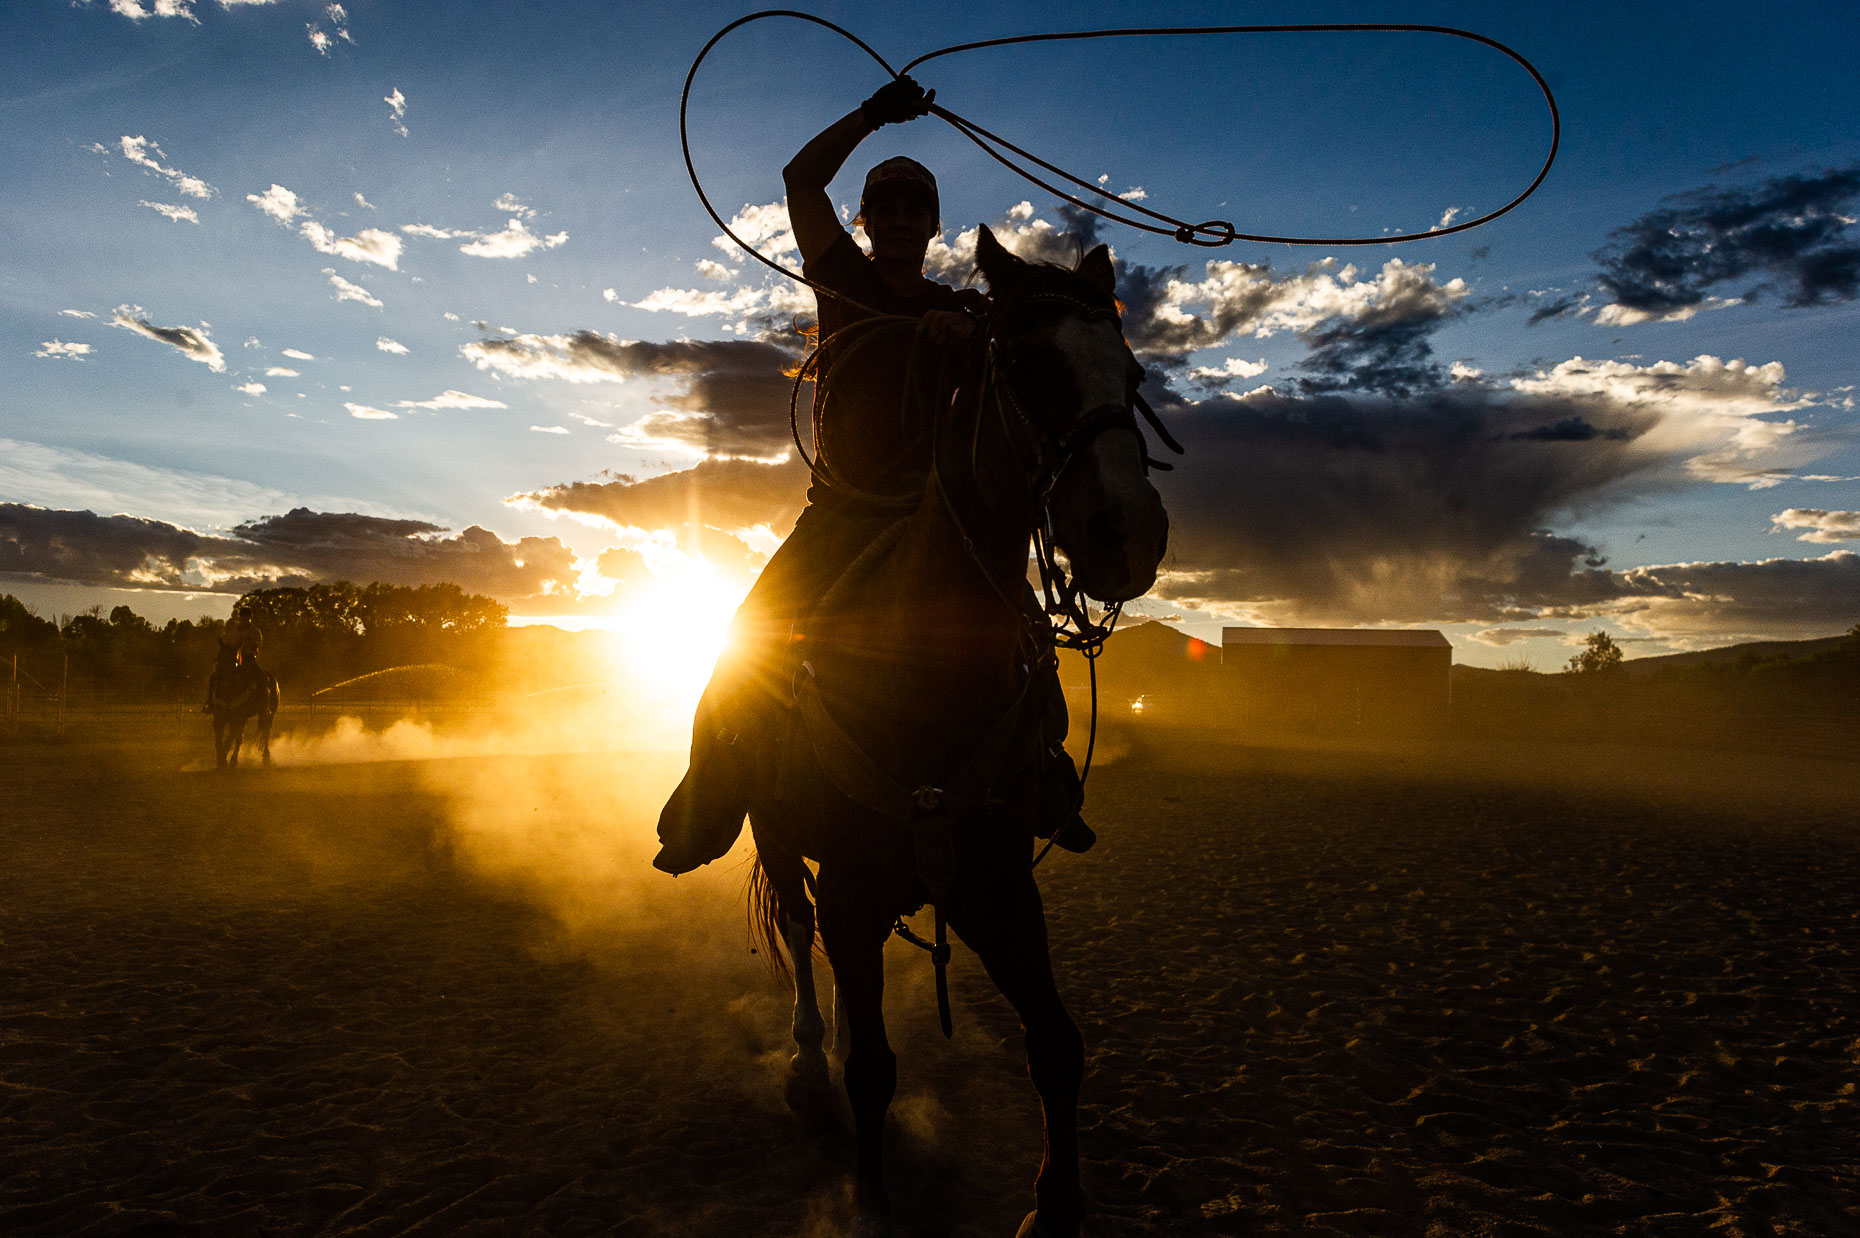 aaron-ingrao-cattle-roping-masters-arena-durango-colorado-831